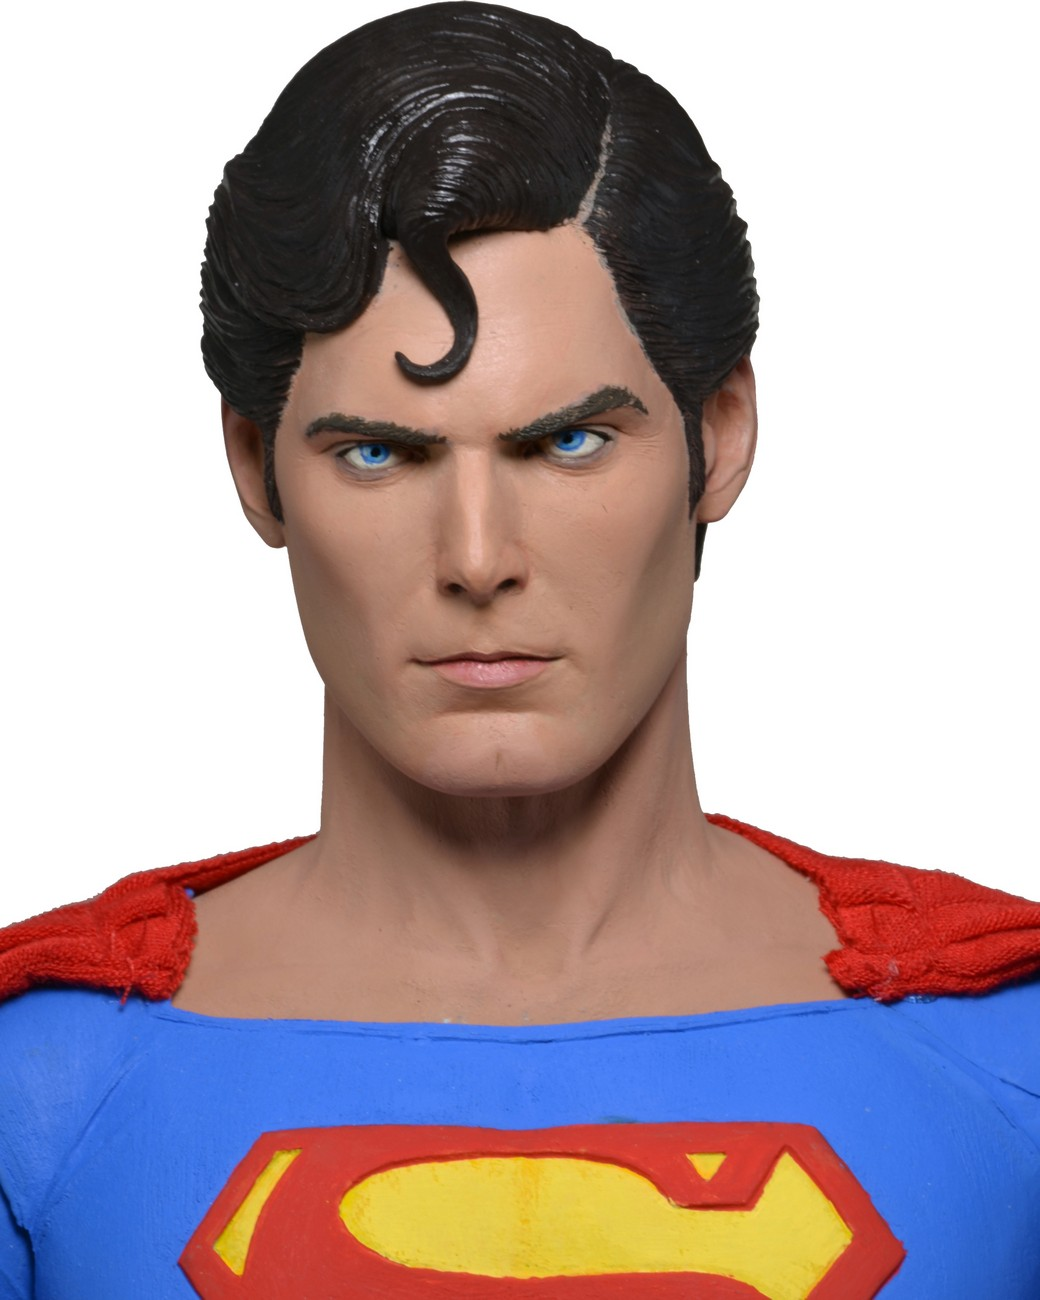 http://news.toyark.com/wp-content/uploads/sites/4/2015/06/Christopher-Reeve-18-Inch-Superman-by-NECA-001.jpg